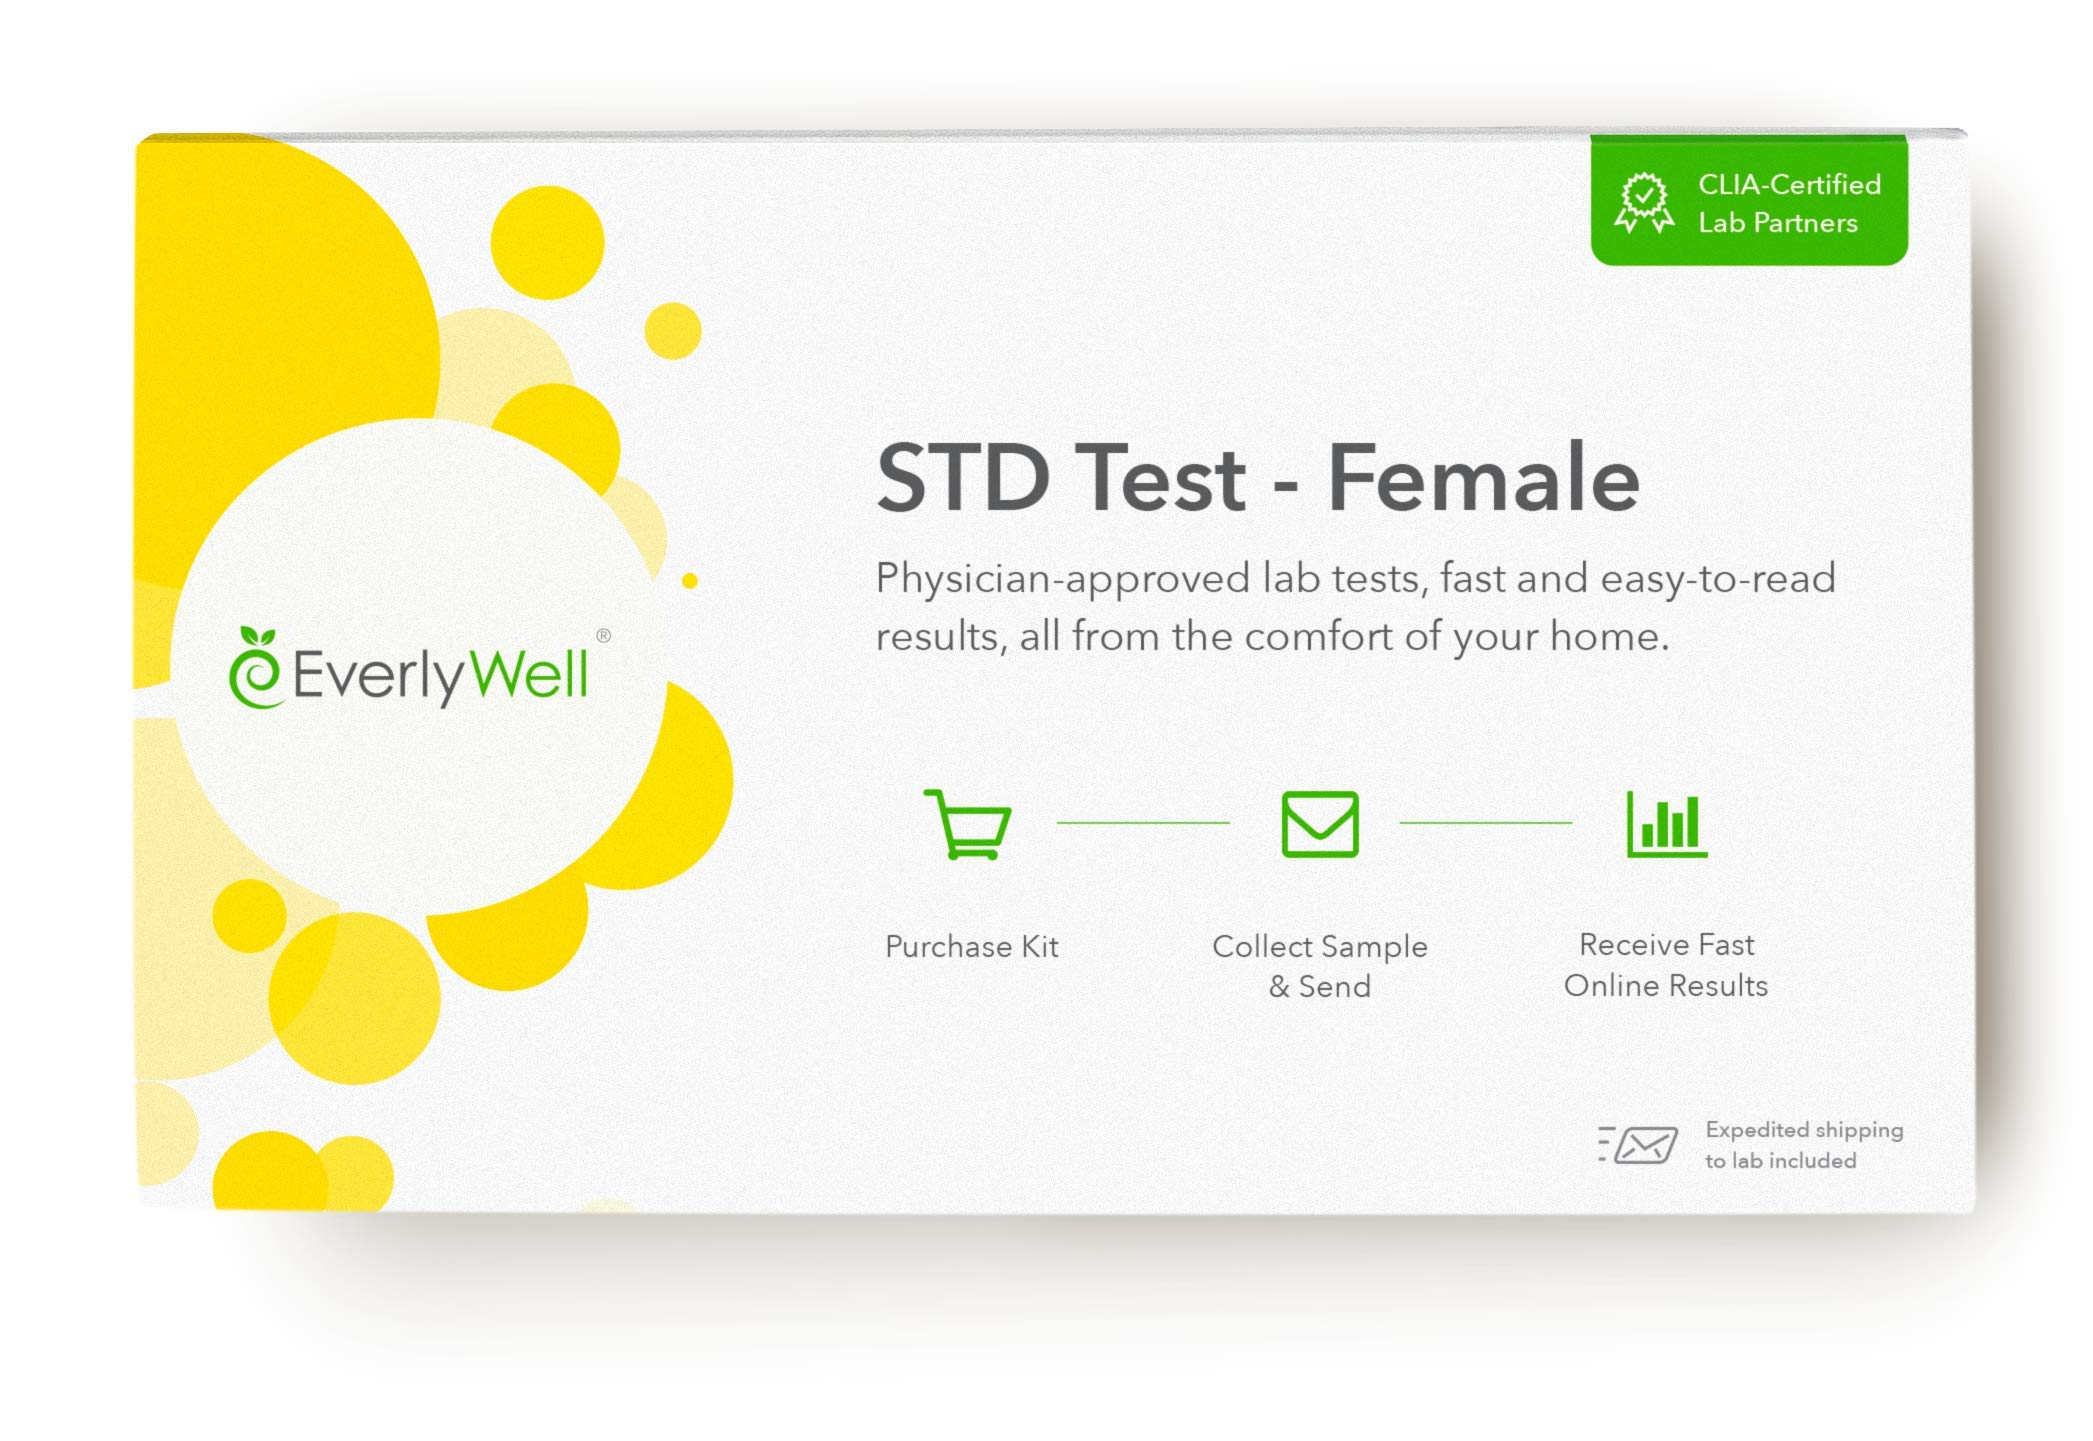 EverlyWell - Female at-Home STD Test - Discreetly Test for 7 Common STDs (Not Available in RI, NJ, NY, and MD) by Everly Well